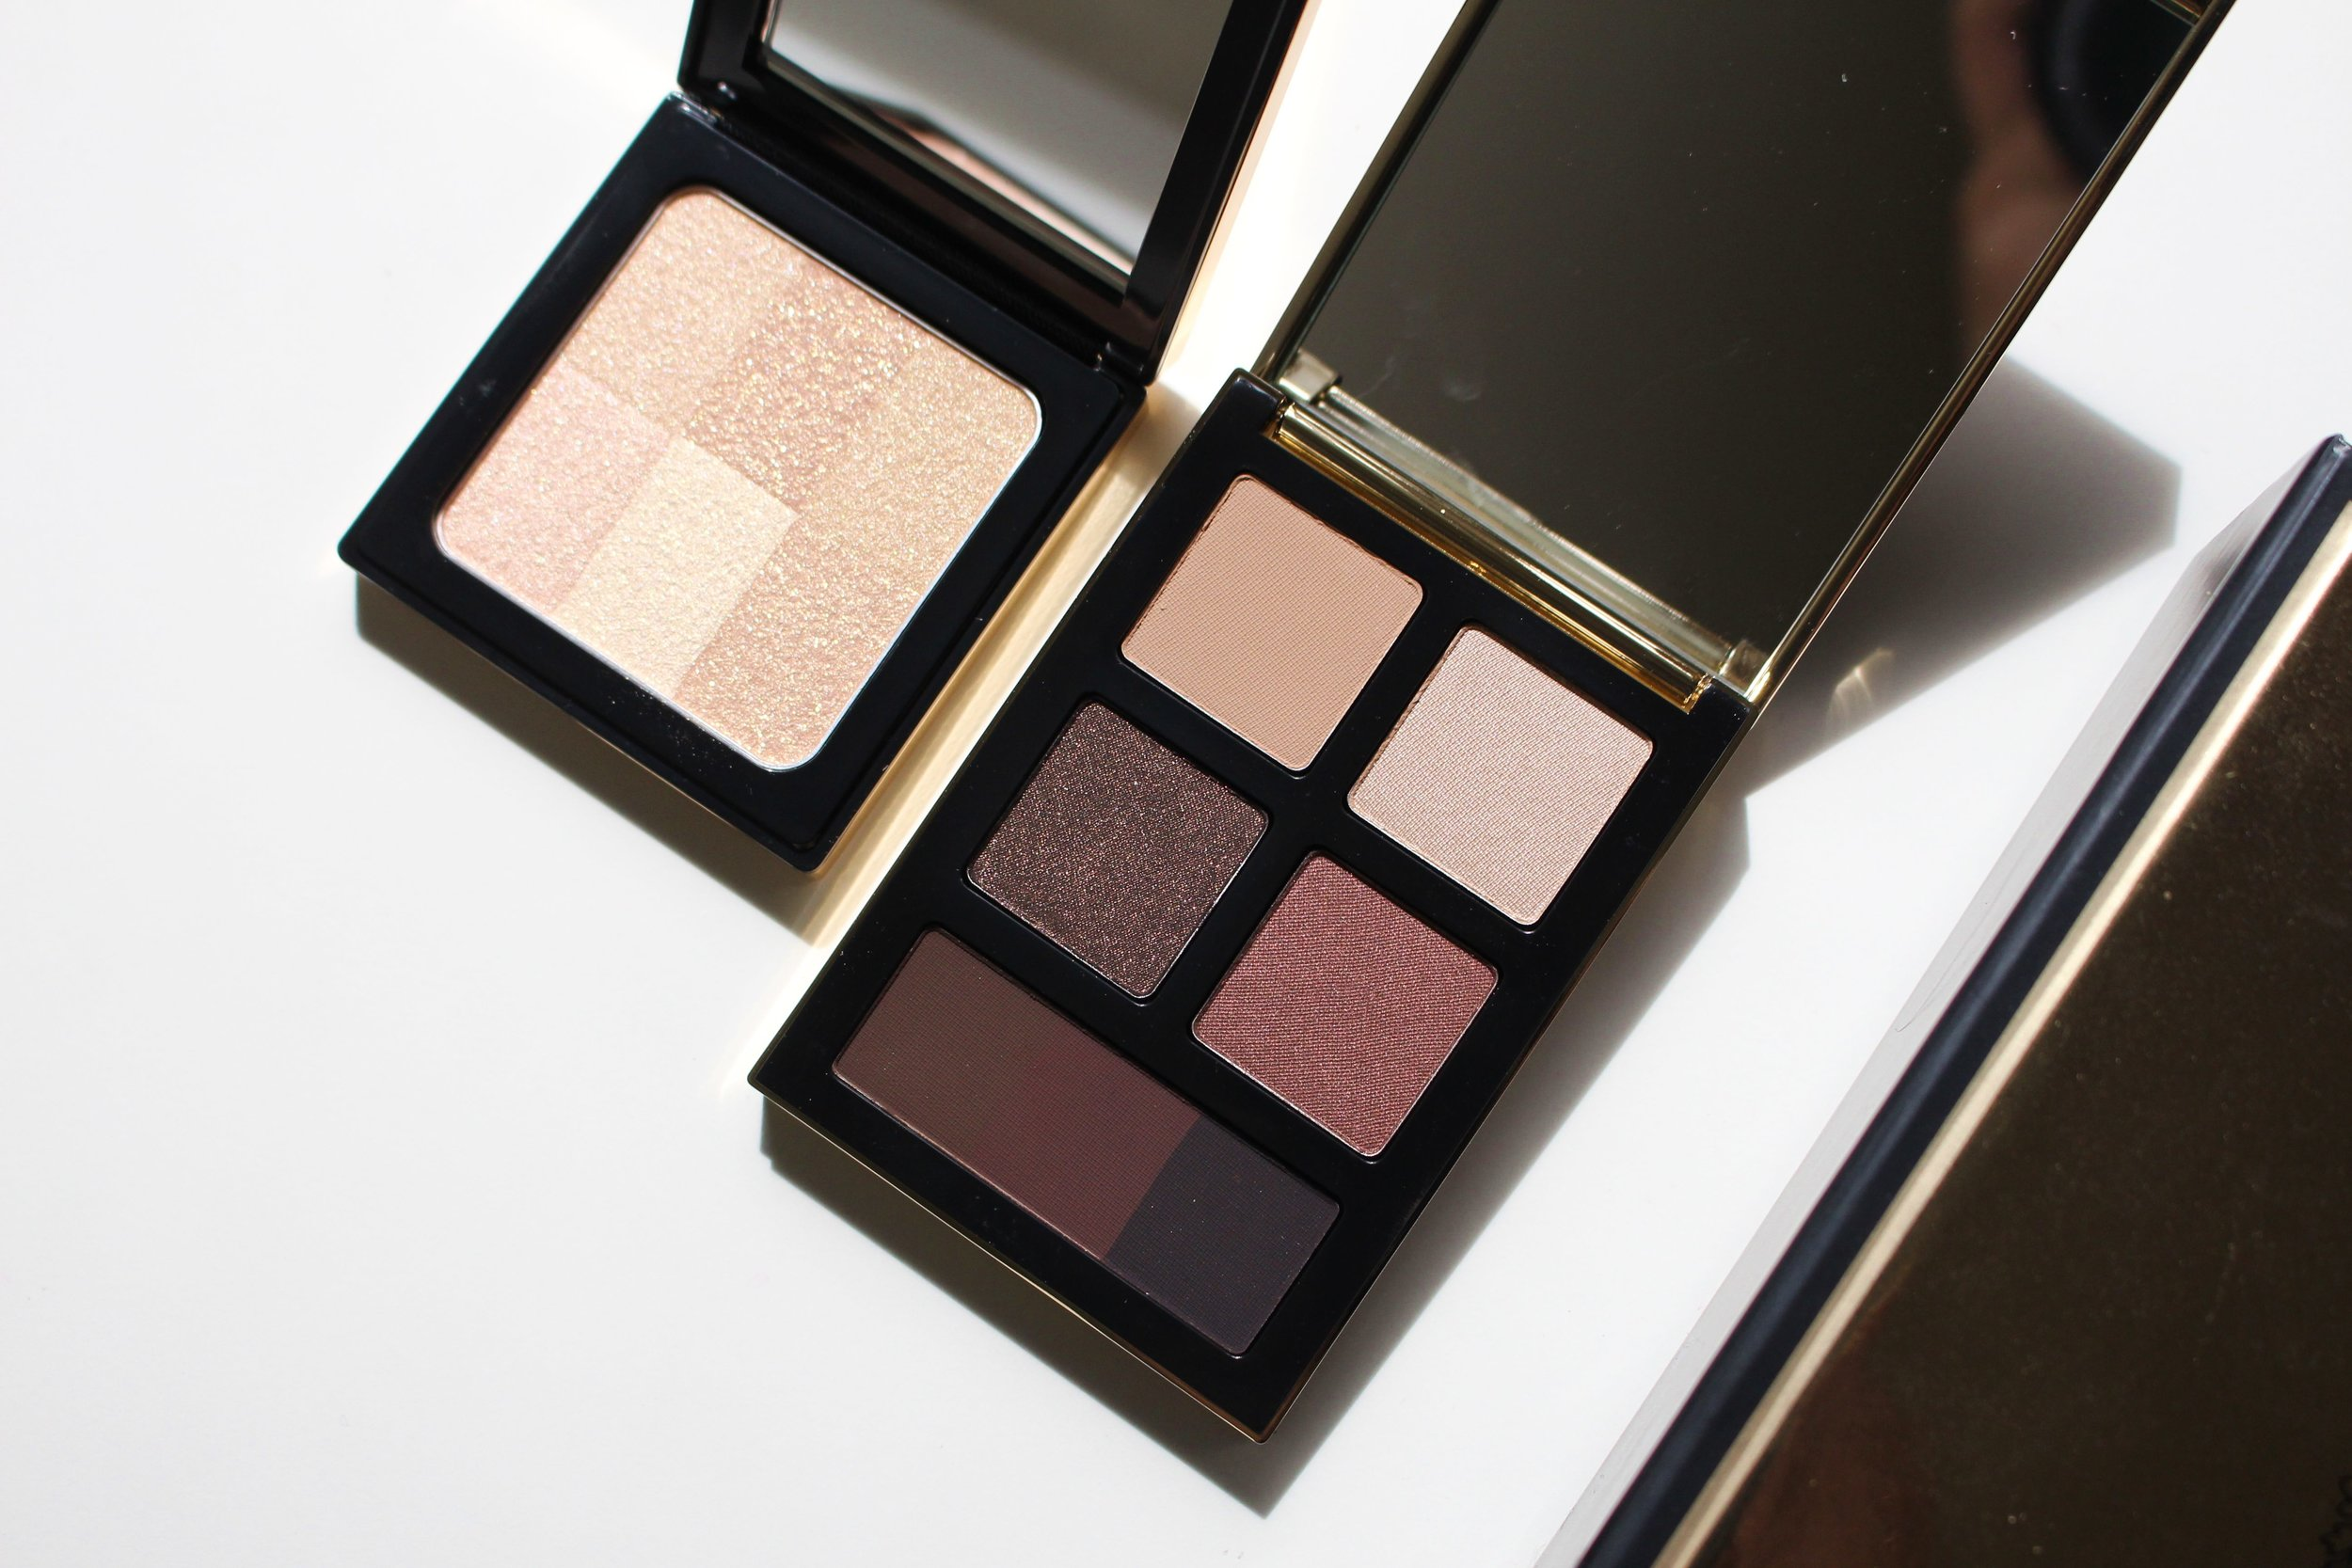 A Holiday Ready Look With The The Bobbi Brown Wine